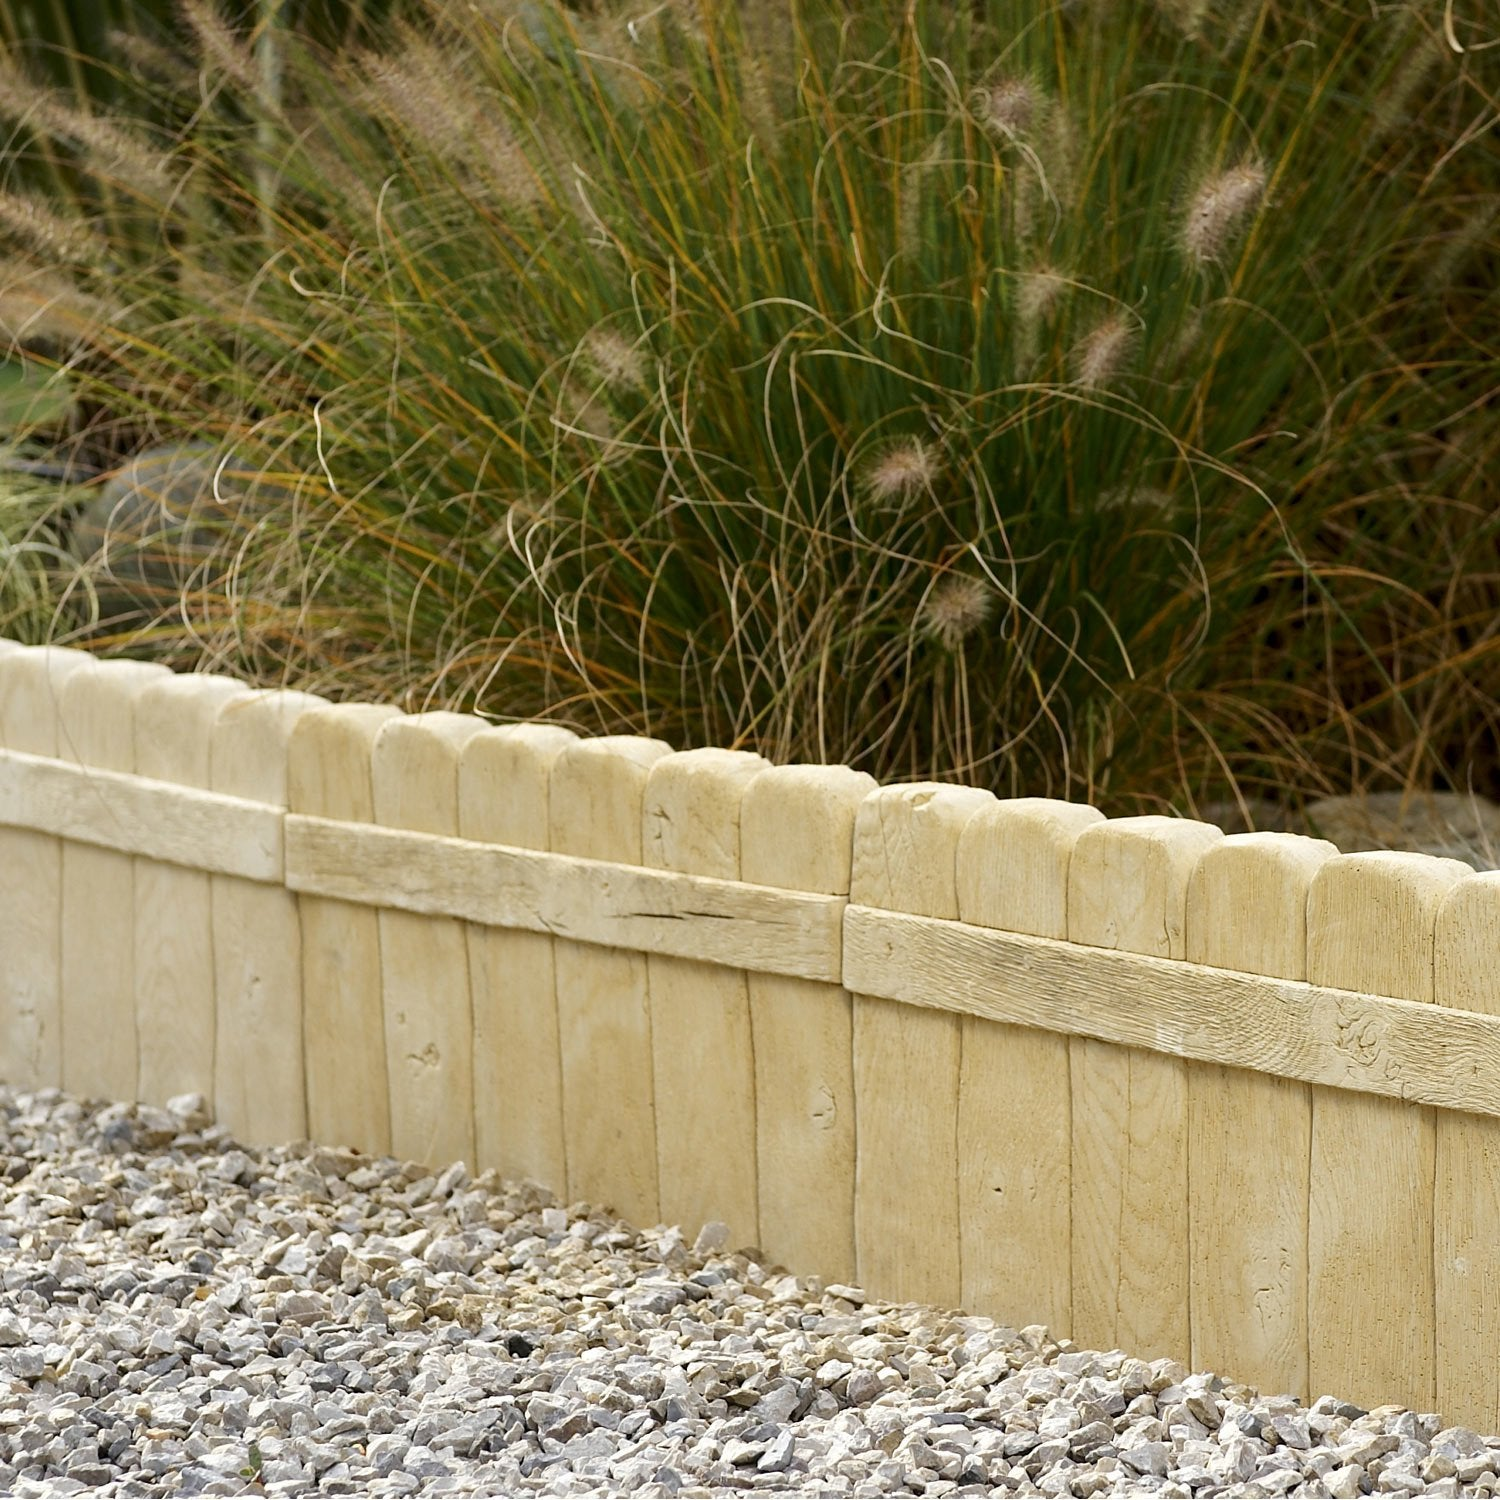 Bordure droite alp ge b ton naturel x cm for Bordure fenetre beton